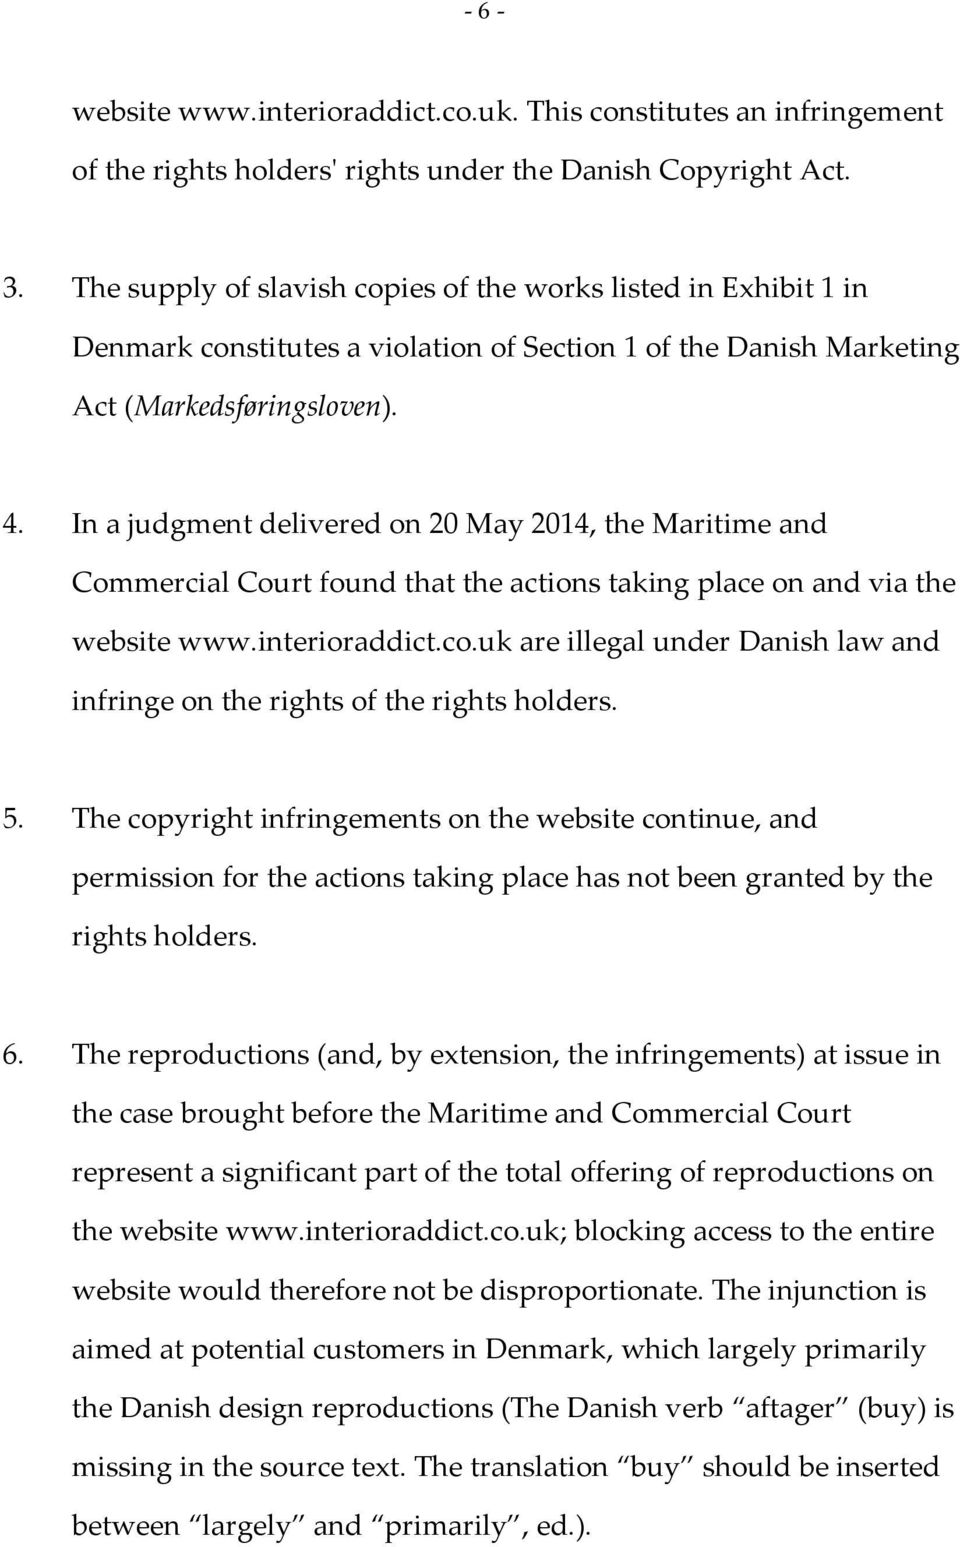 In a judgment delivered on 20 May 2014, the Maritime and Commercial Court found that the actions taking place on and via the website www.interioraddict.co.